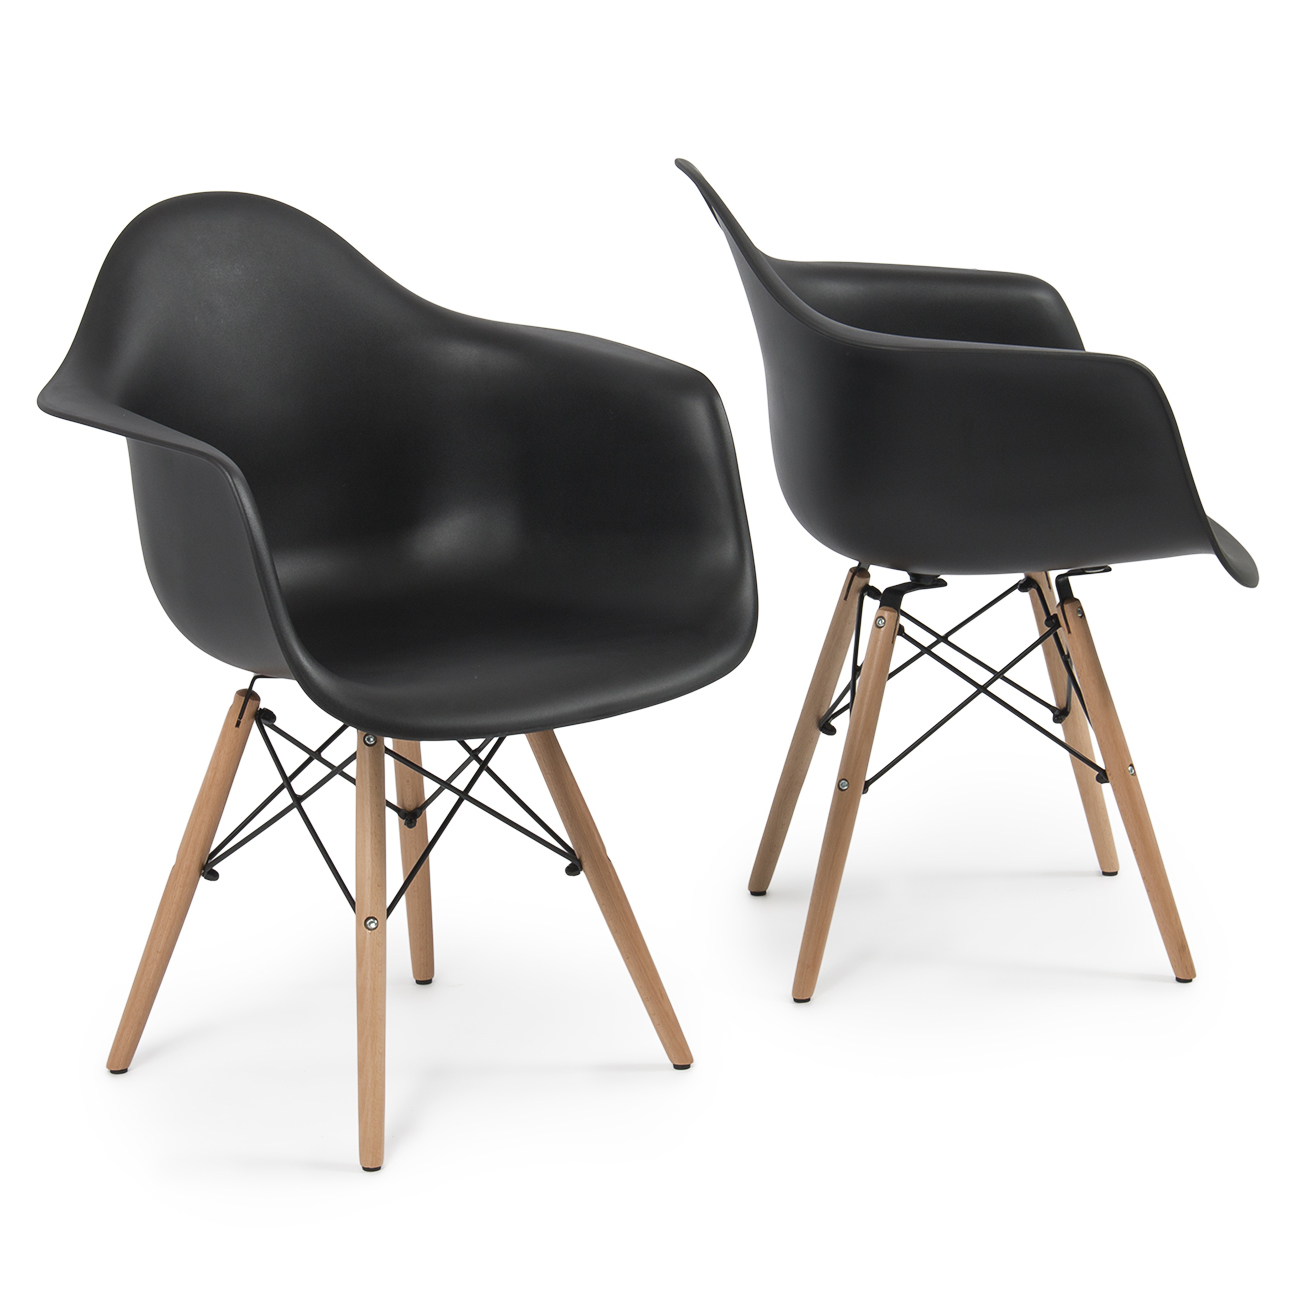 Set of 2 eames dsw style arm chair armchair legs mid for Mid century modern style chairs